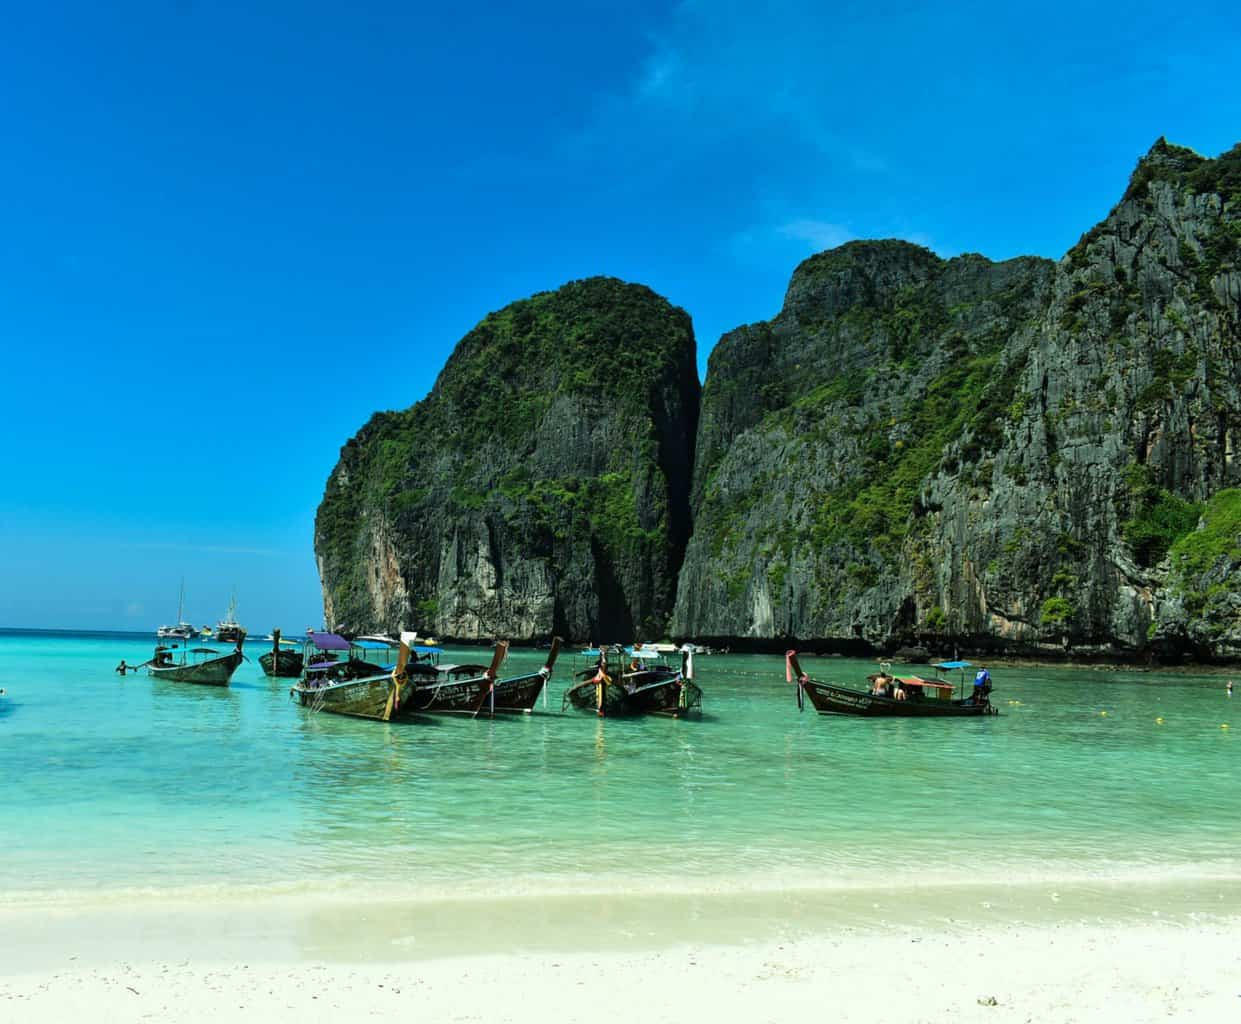 Visiting the Phi Phi Islands from Phuket